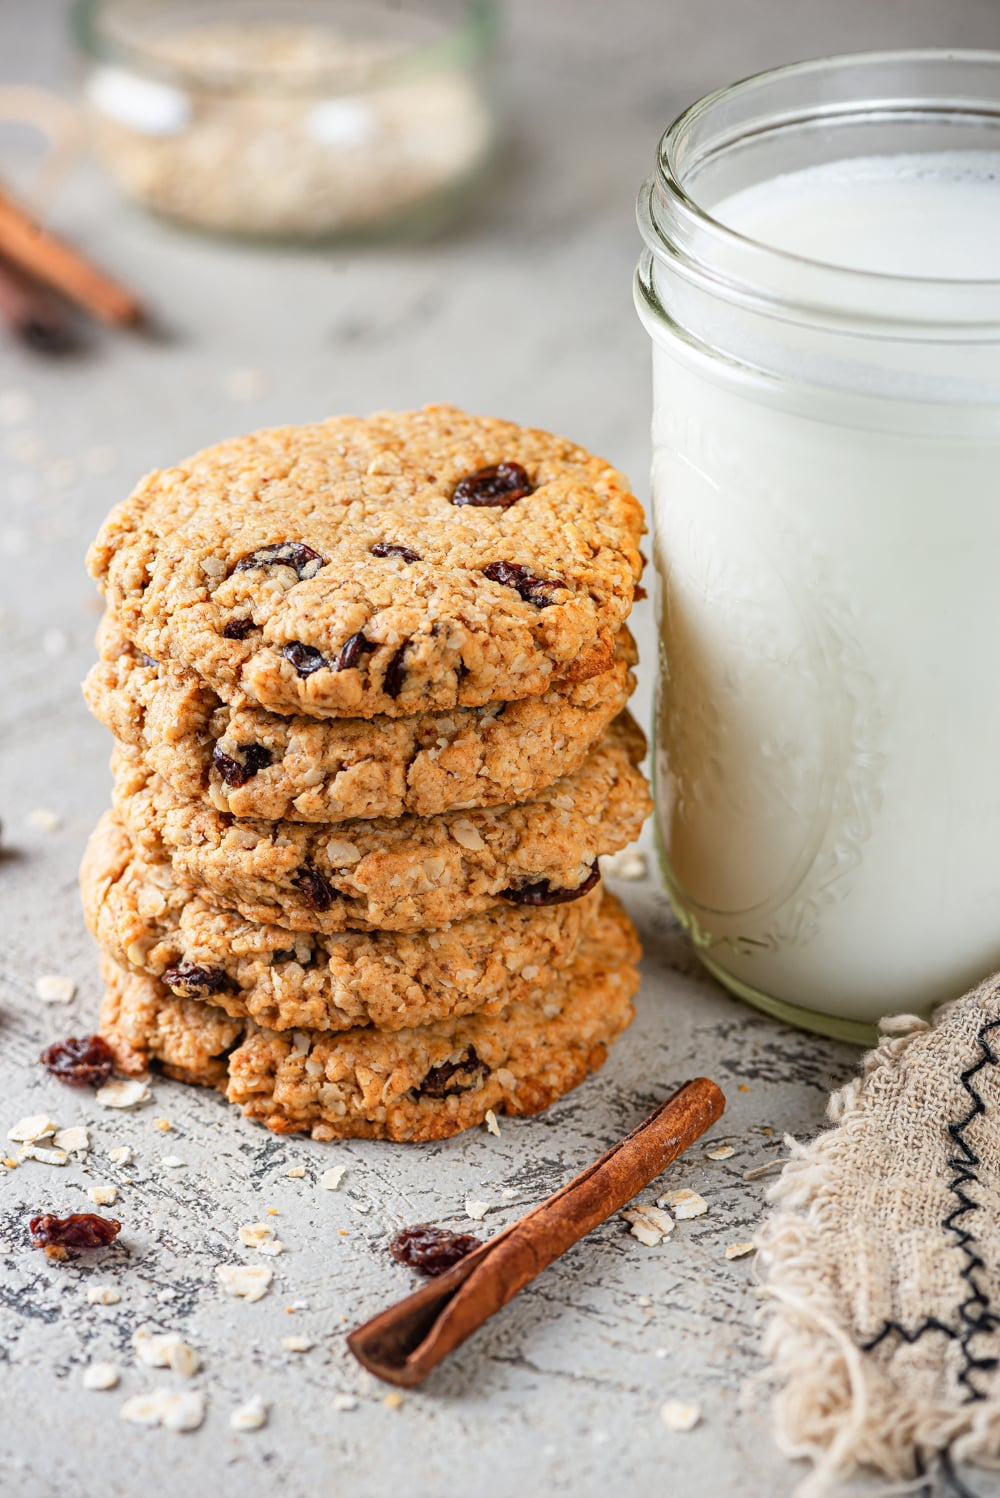 A stack of five vegan oatmeal raisin cookies with a tall glass jar of milk next to it on the right. There is a cinnamon stick in front of the cookies and milk with a few oats around them. Everything is on a grey counter.